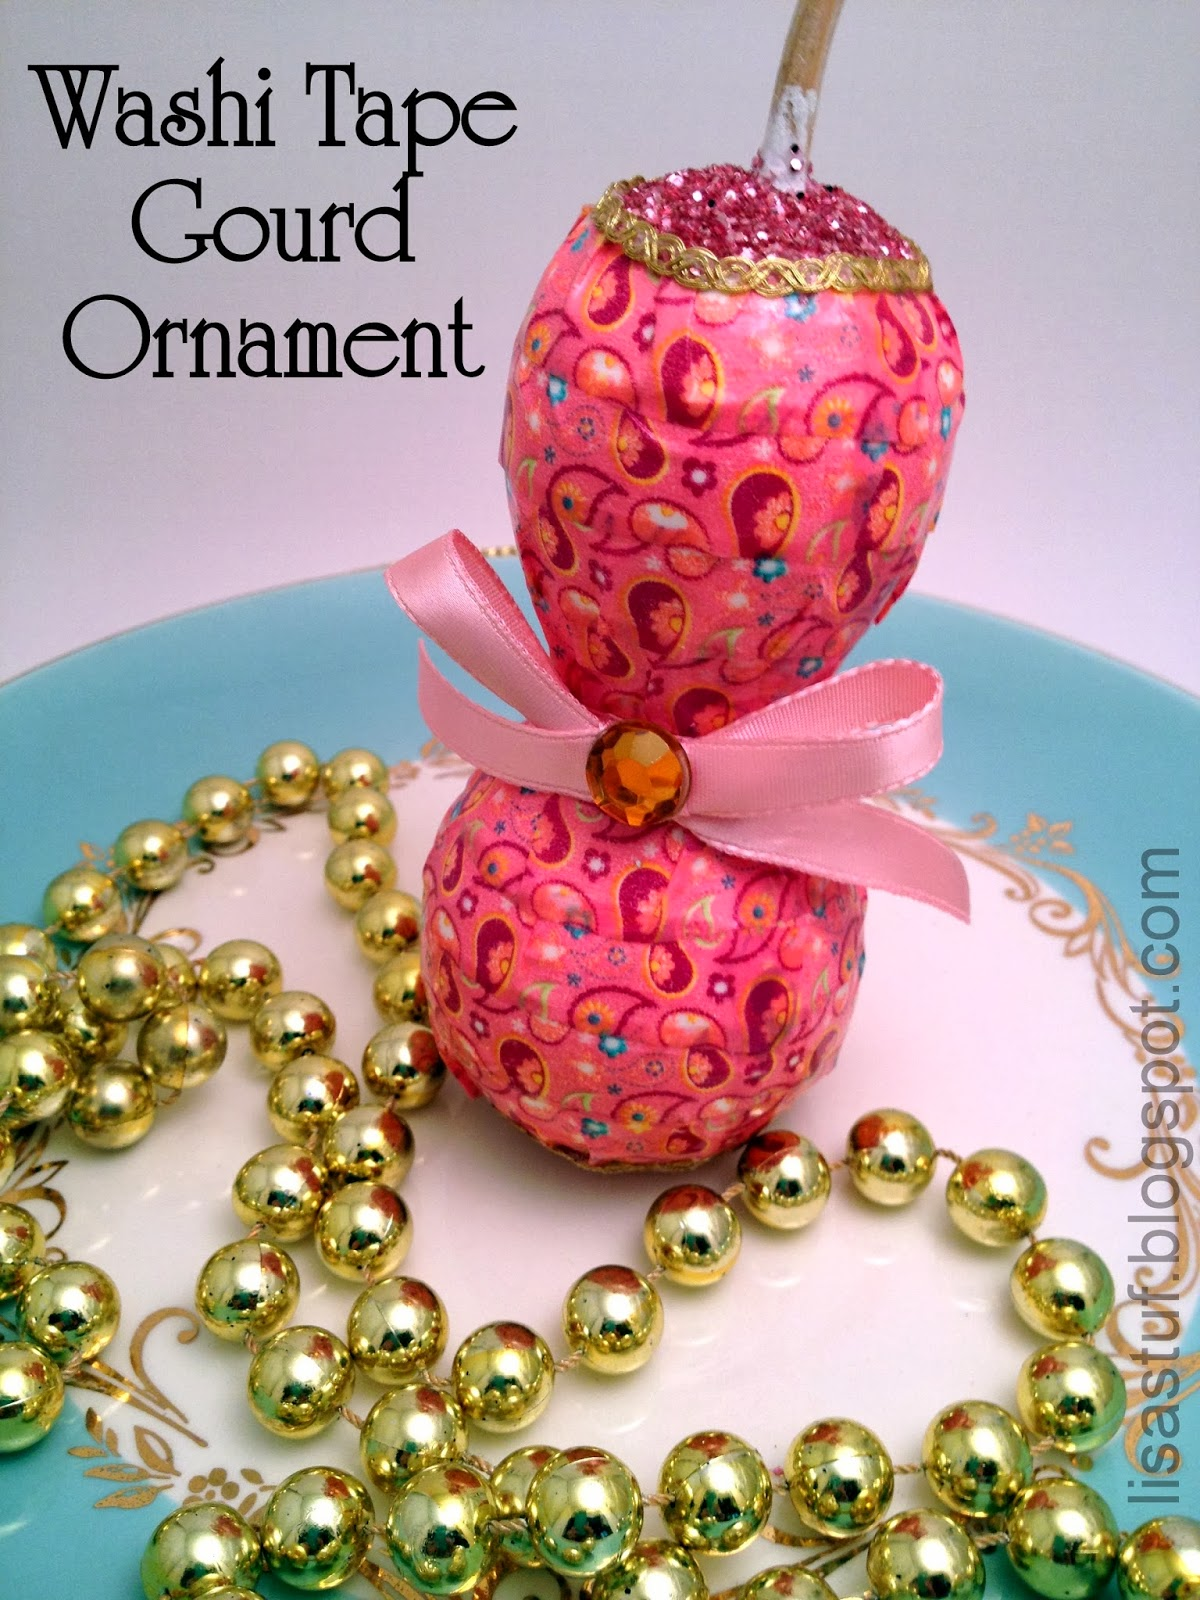 Stuff n such by lisa washi tape gourd ornament craft for Where to buy gourds for crafts